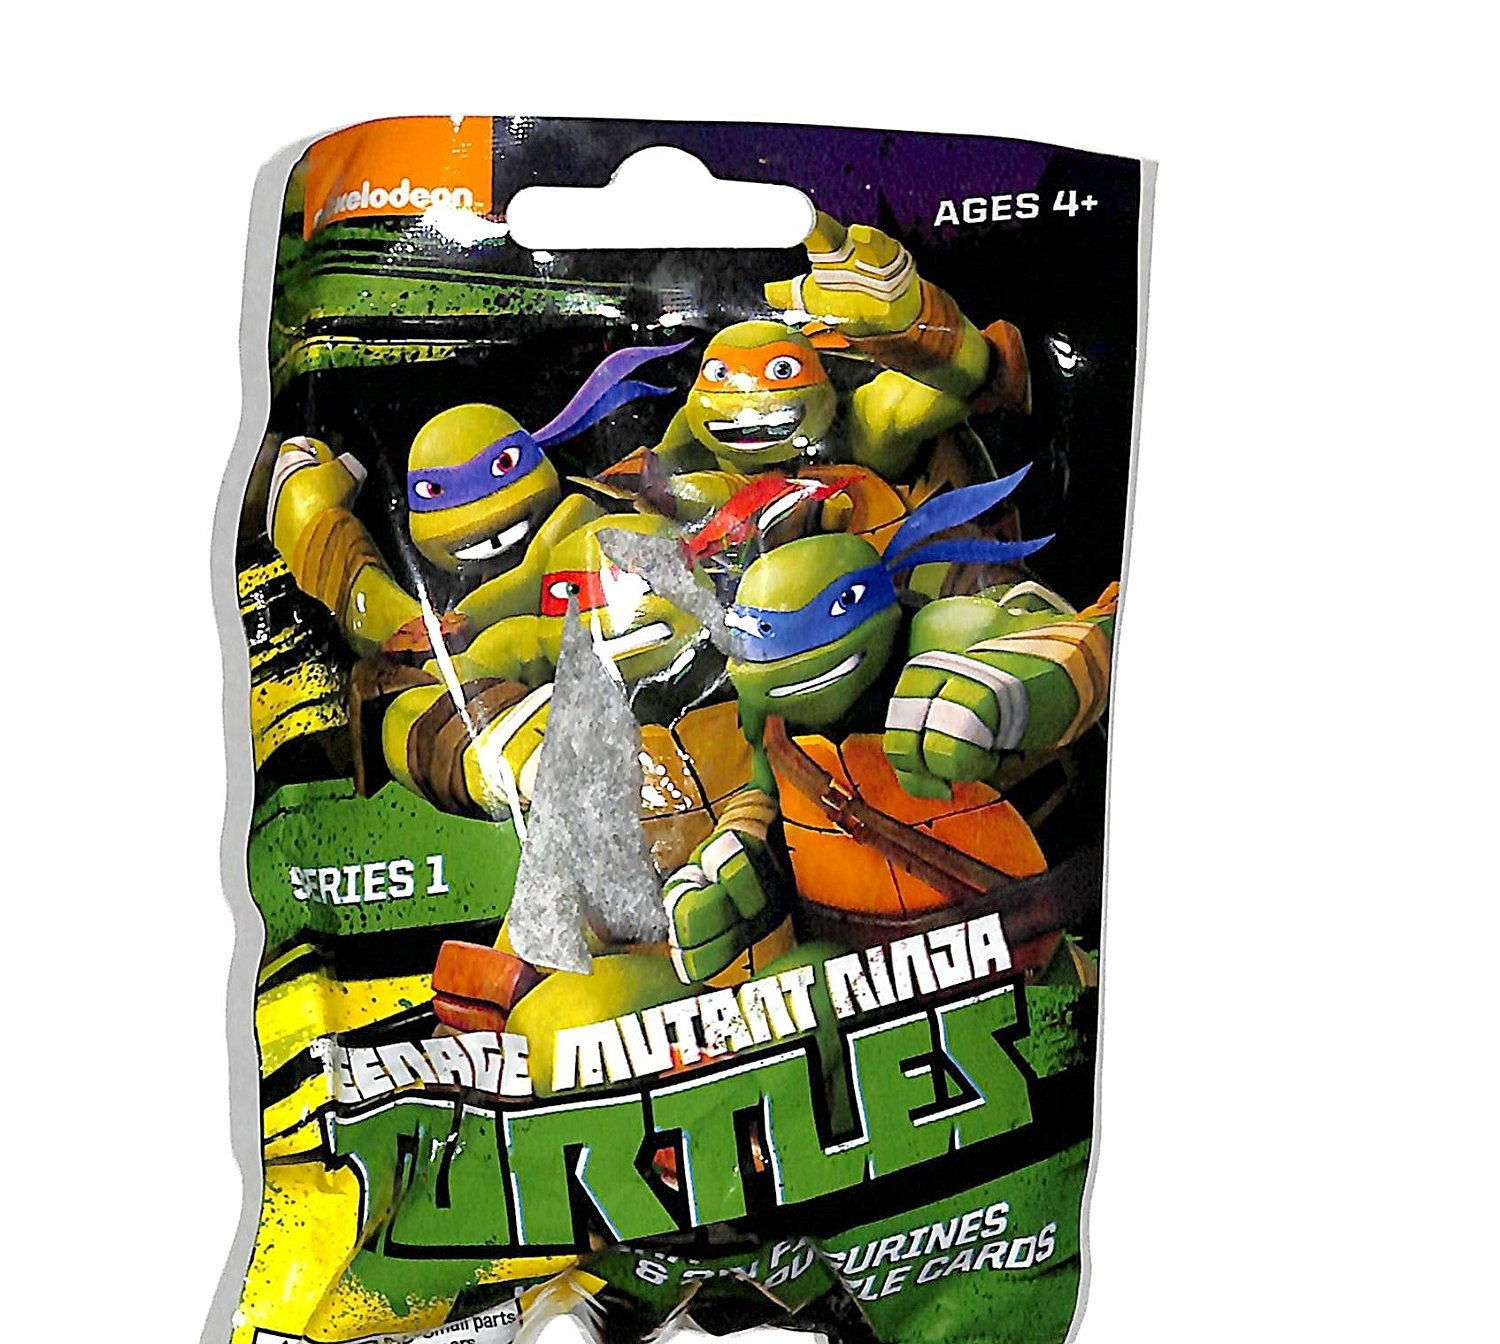 Nickelodeon Teenage Mutant Ninja Turtles Keychain 3d Puzzle 5 Sealed packs by bulls i toy